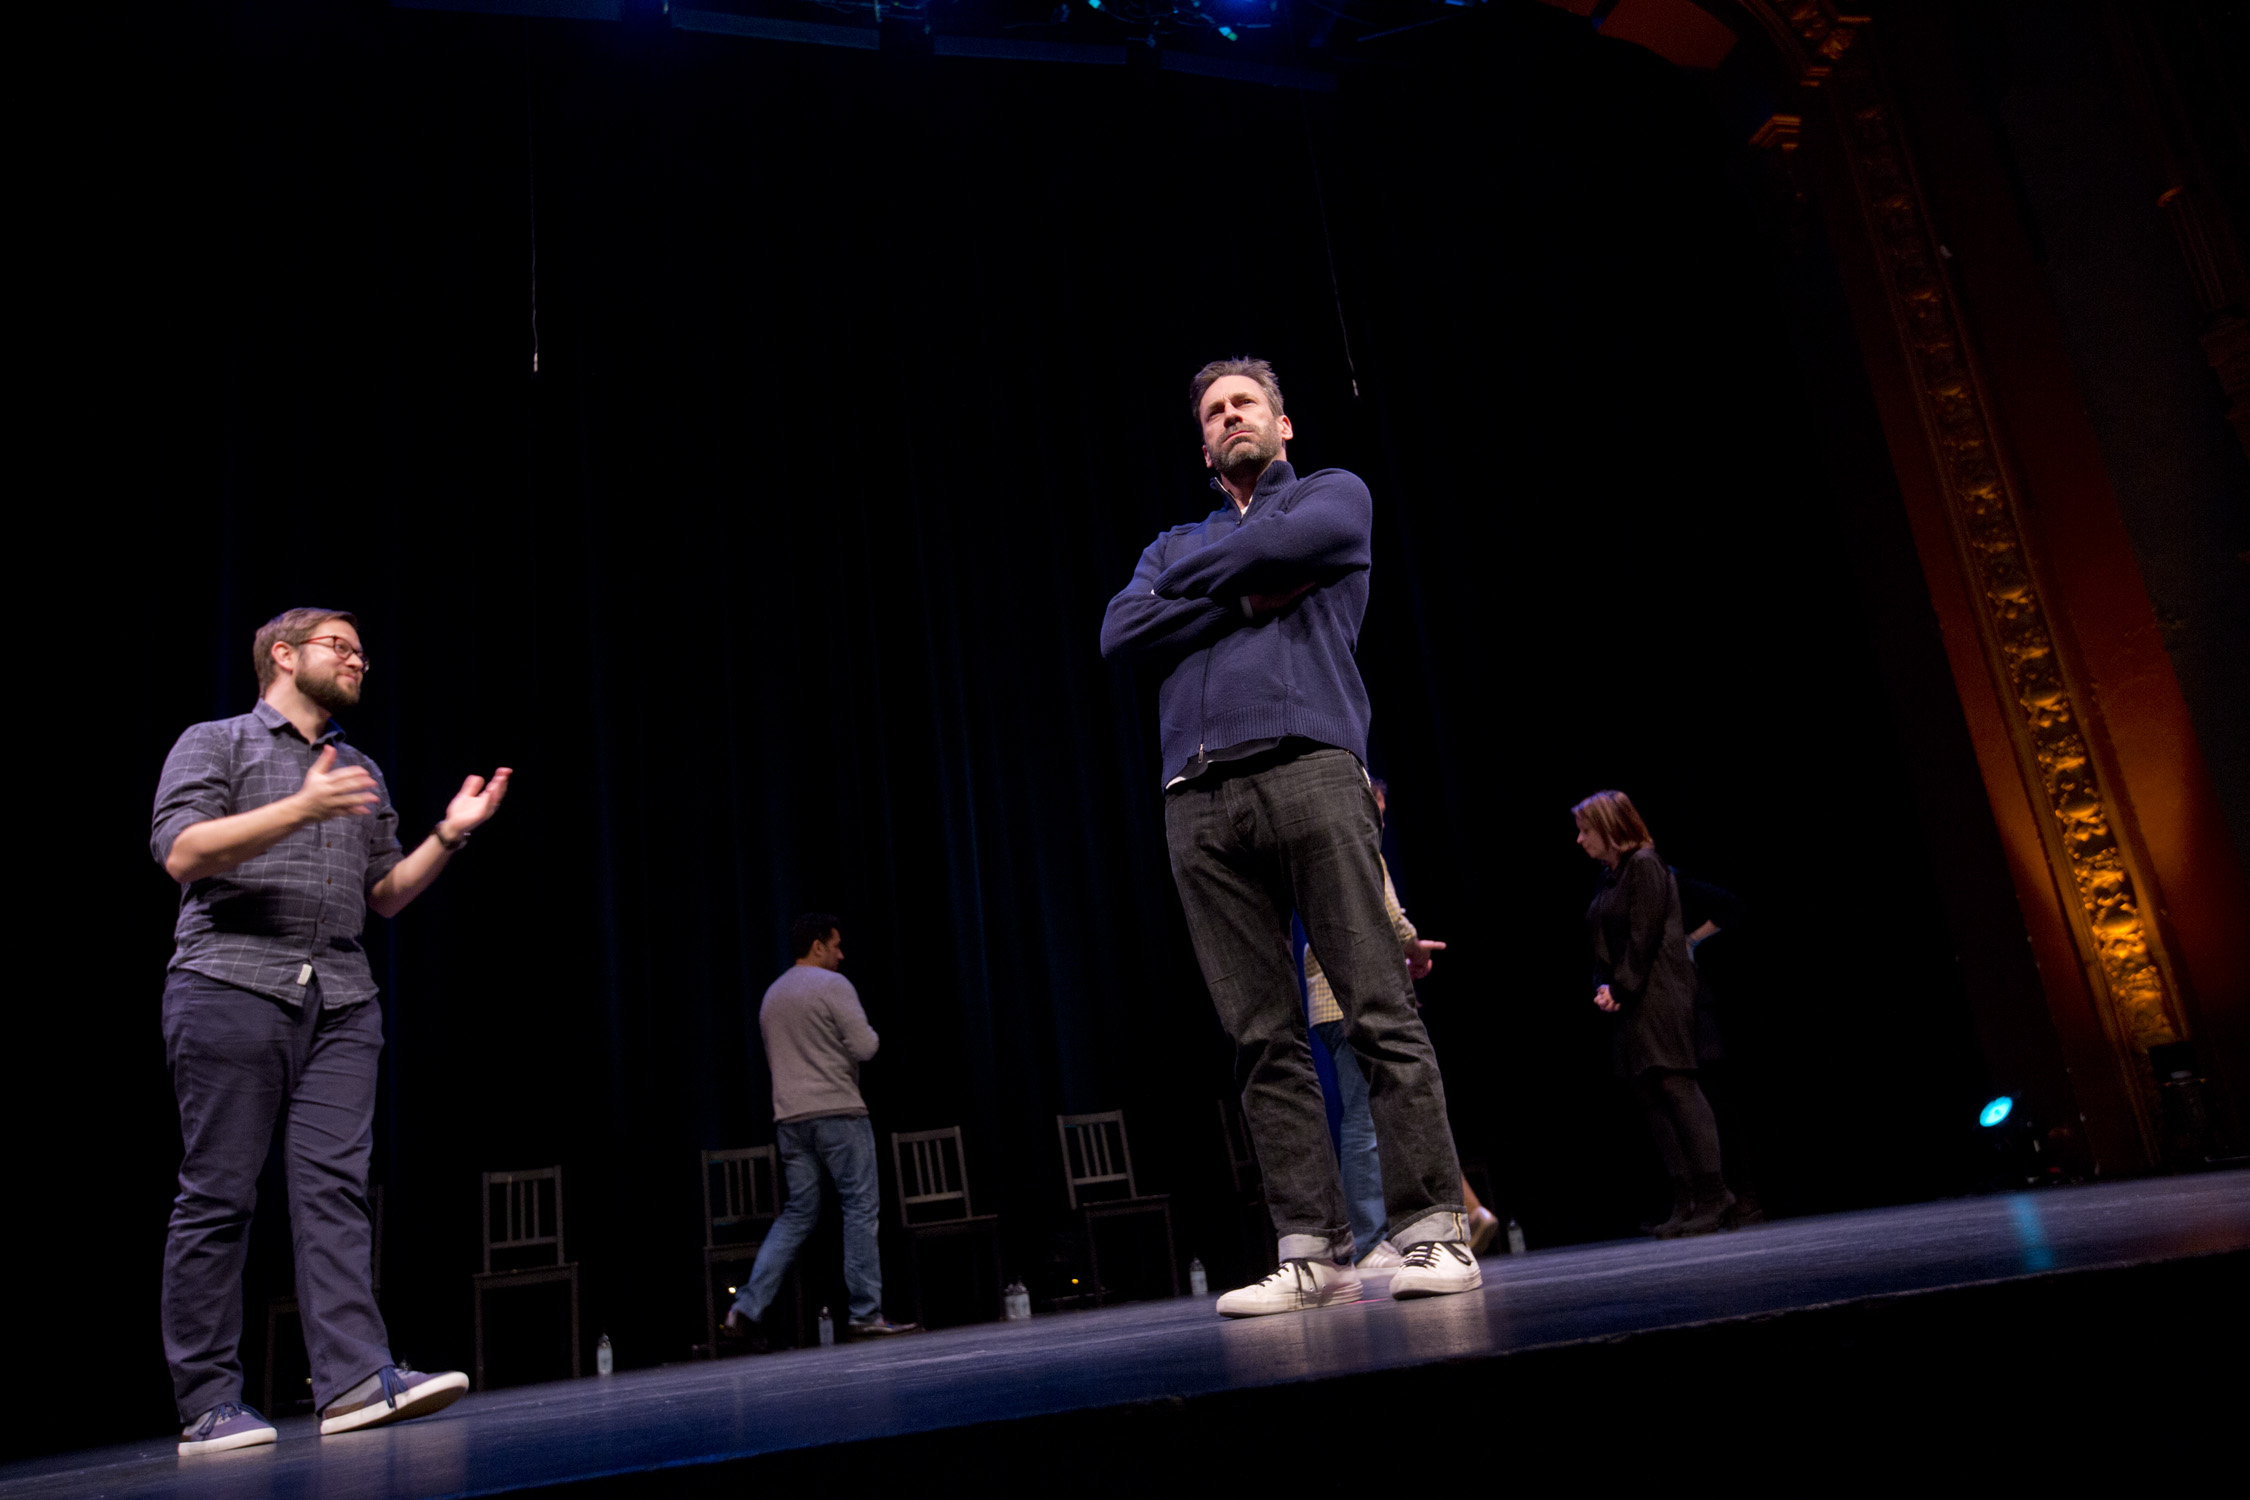 Cole Stratton and Jon Hamm at Theme Park Improv 2017 at SF Sketchfest. Photo by Tommy Lau.